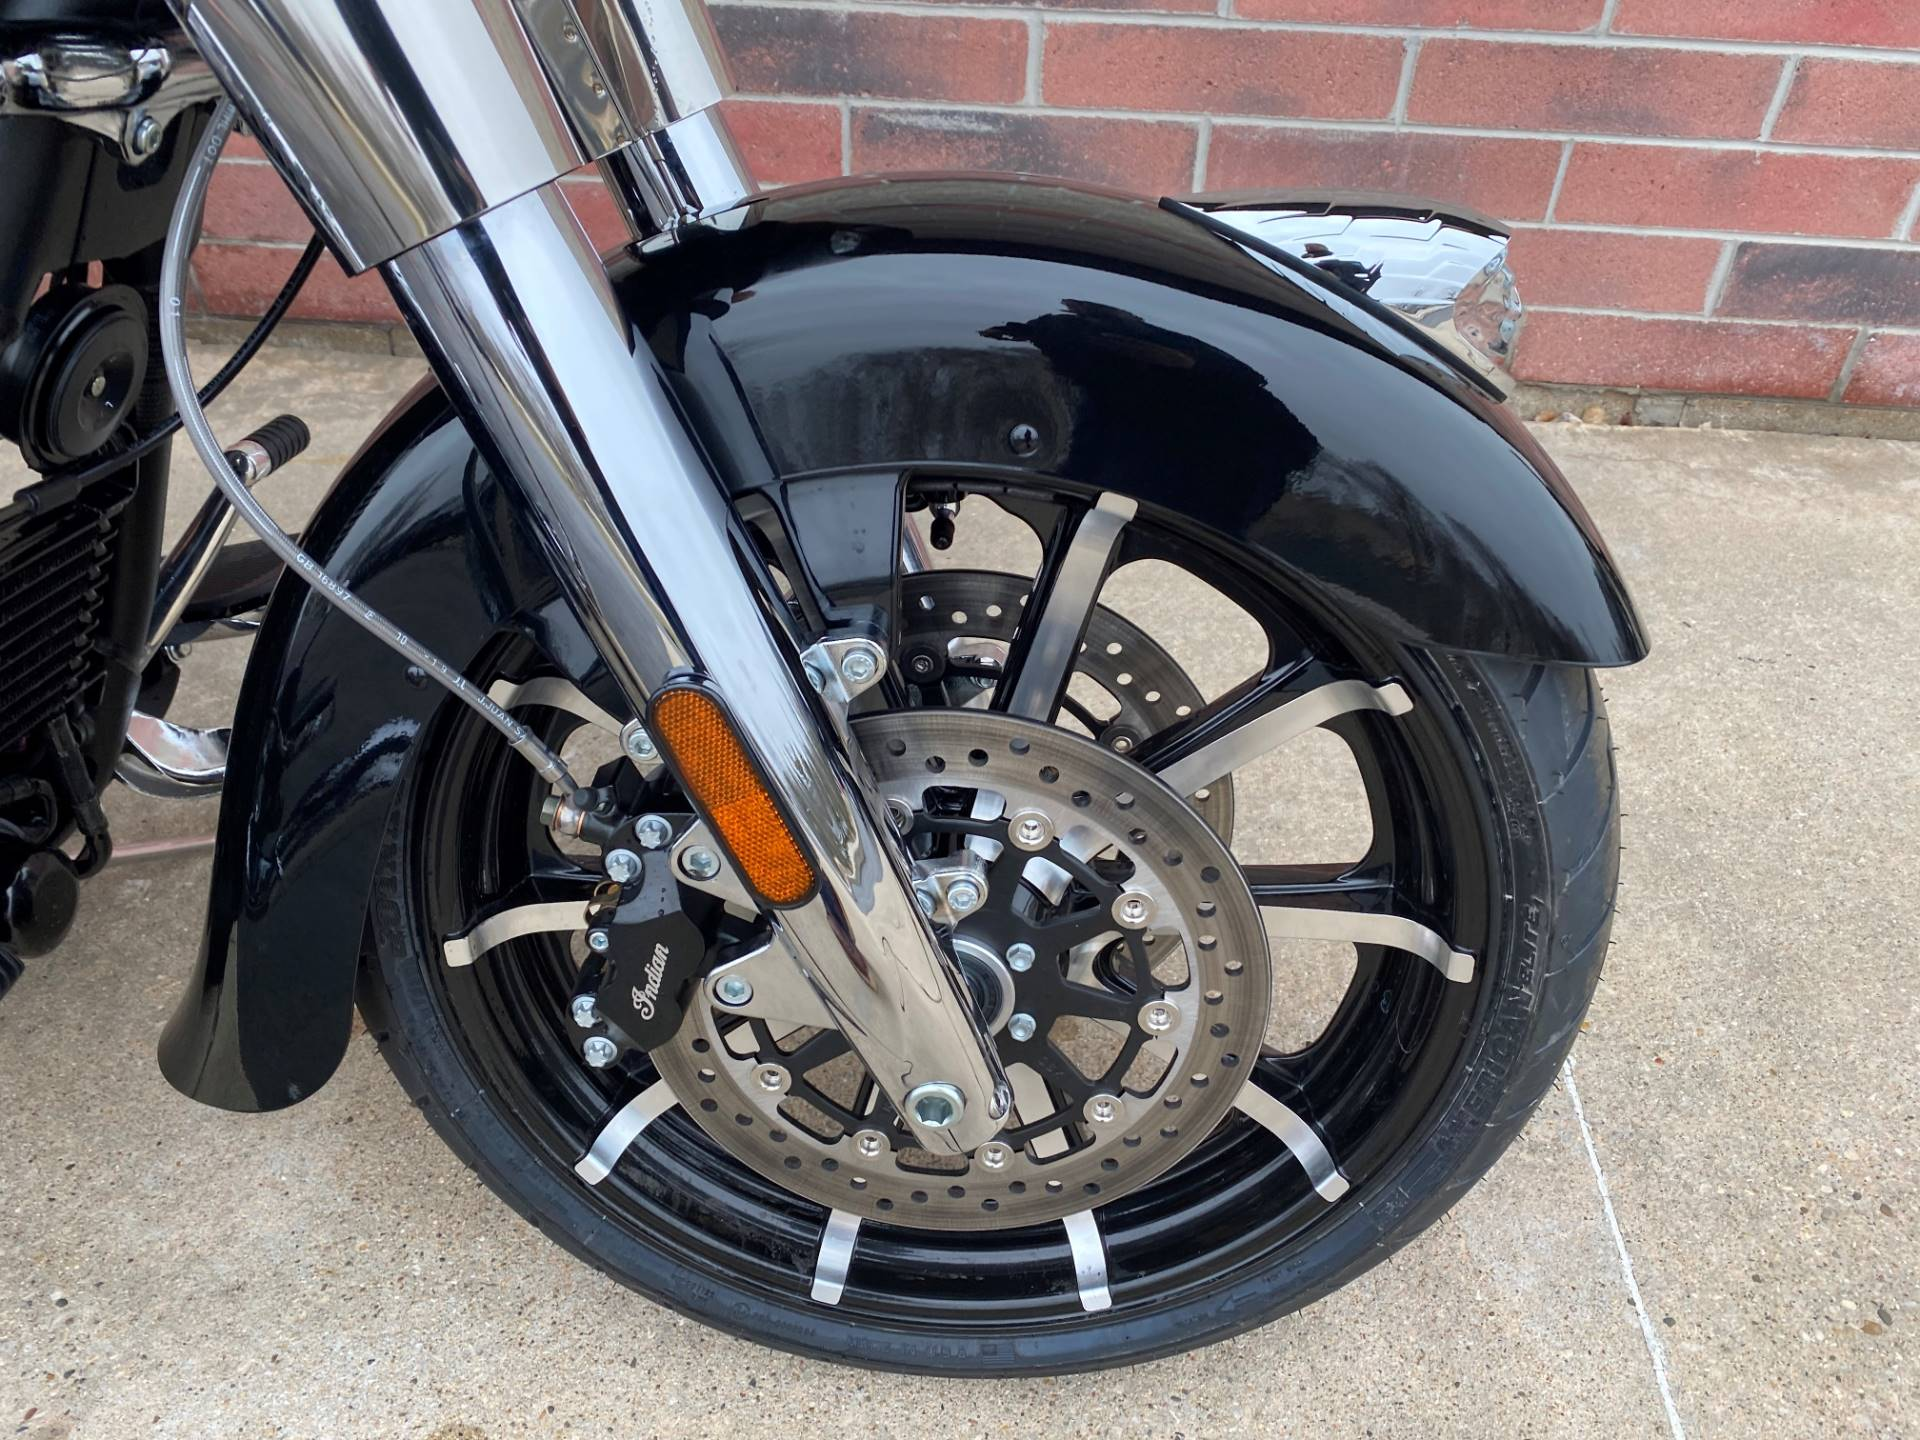 2020 Indian Chieftain® Limited in Muskego, Wisconsin - Photo 4